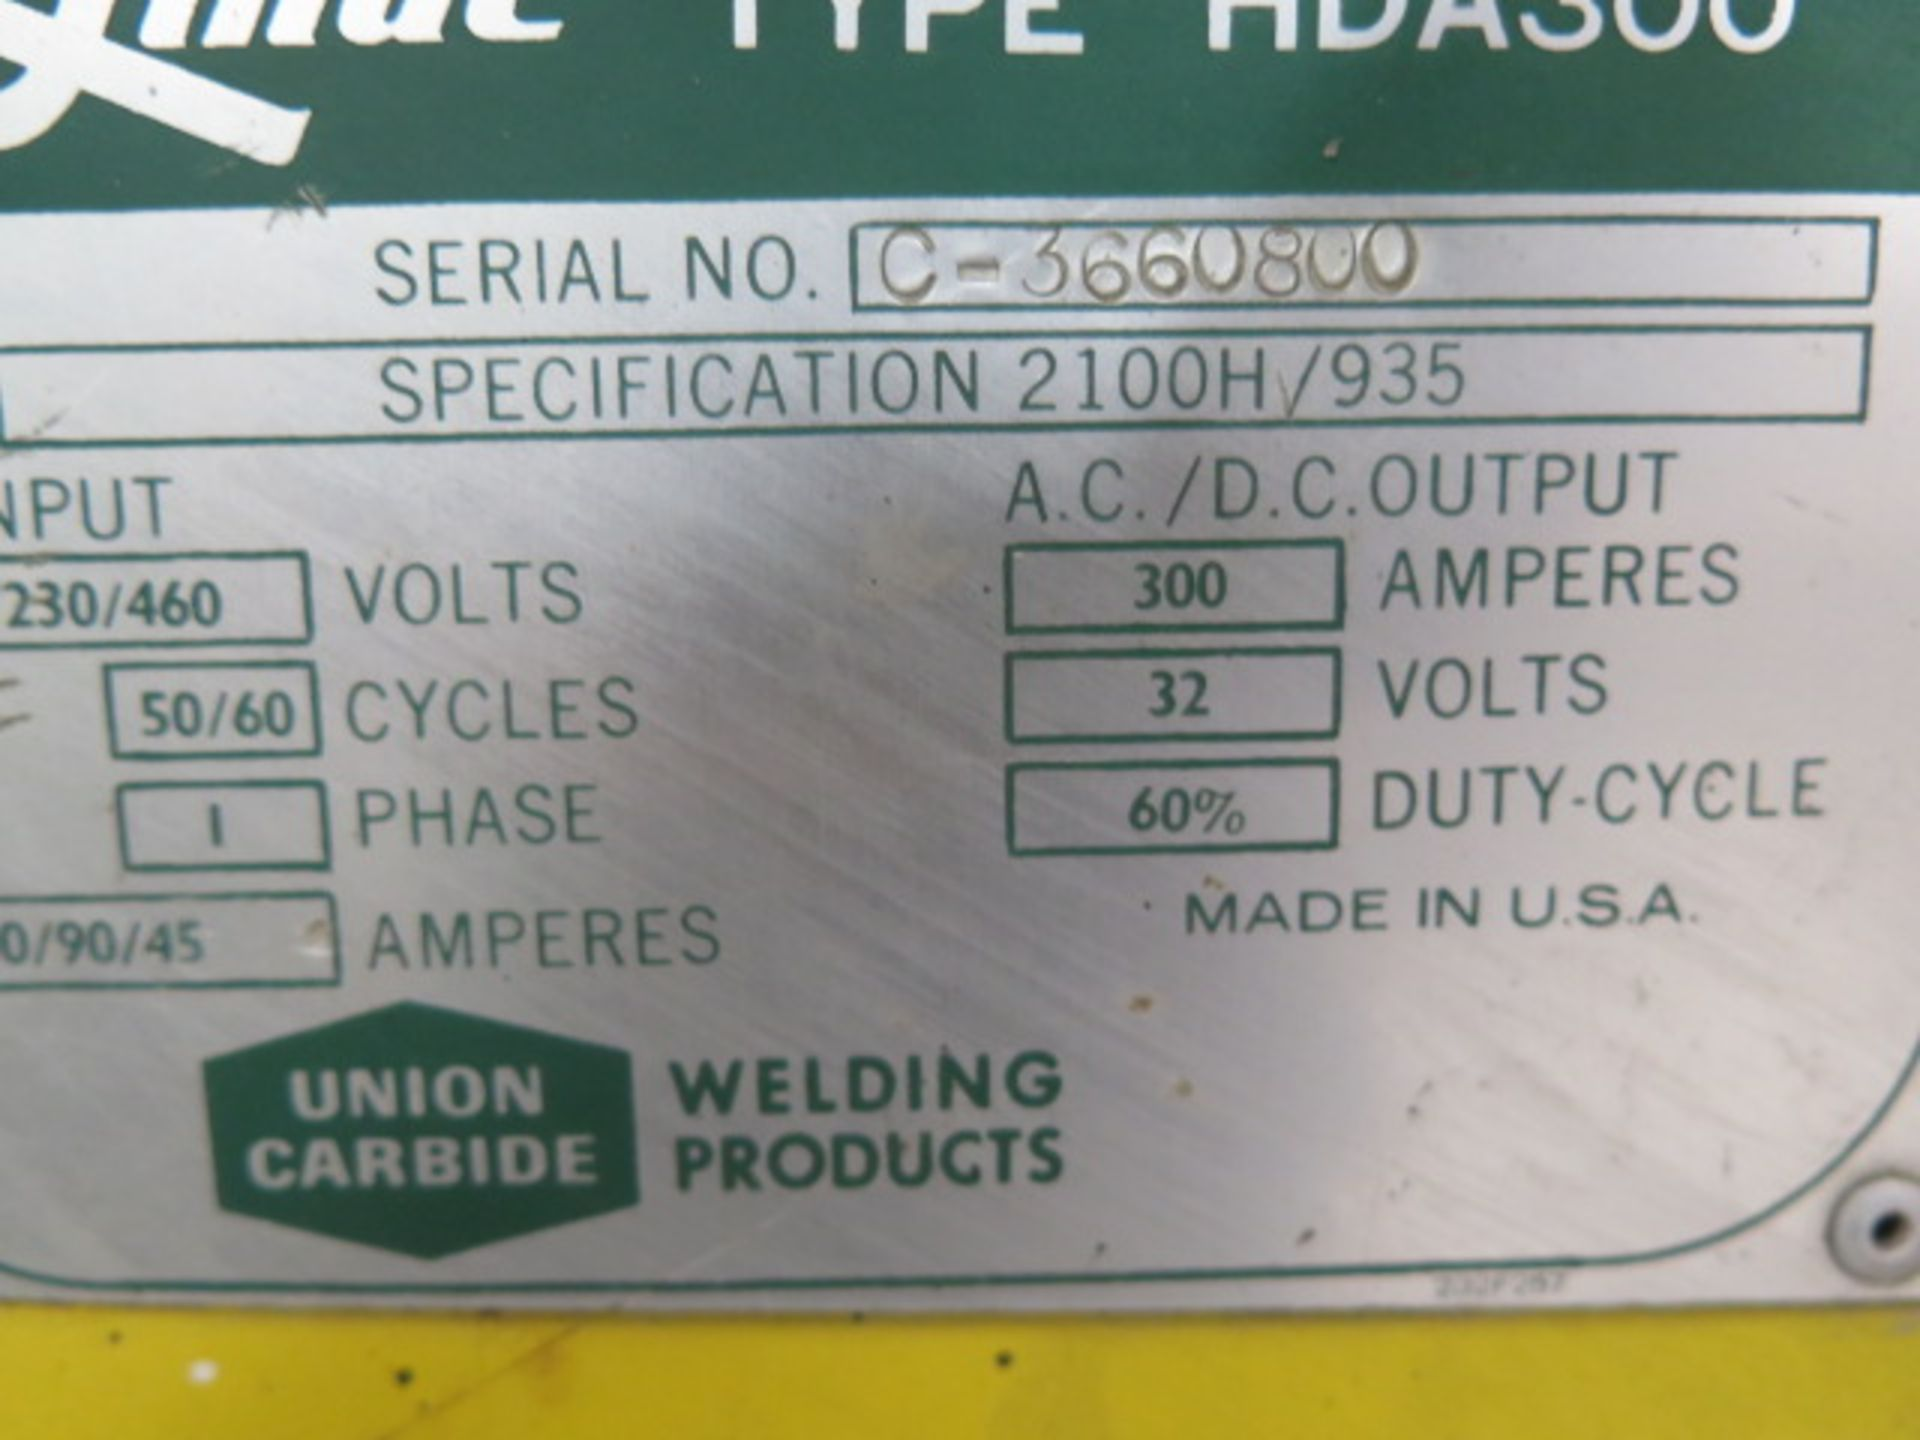 Linde HAD-300 AC/DC Arc Welding Power Source s/n C-3660800 (SOLD AS-IS - NO WARRANTY) - Image 5 of 5